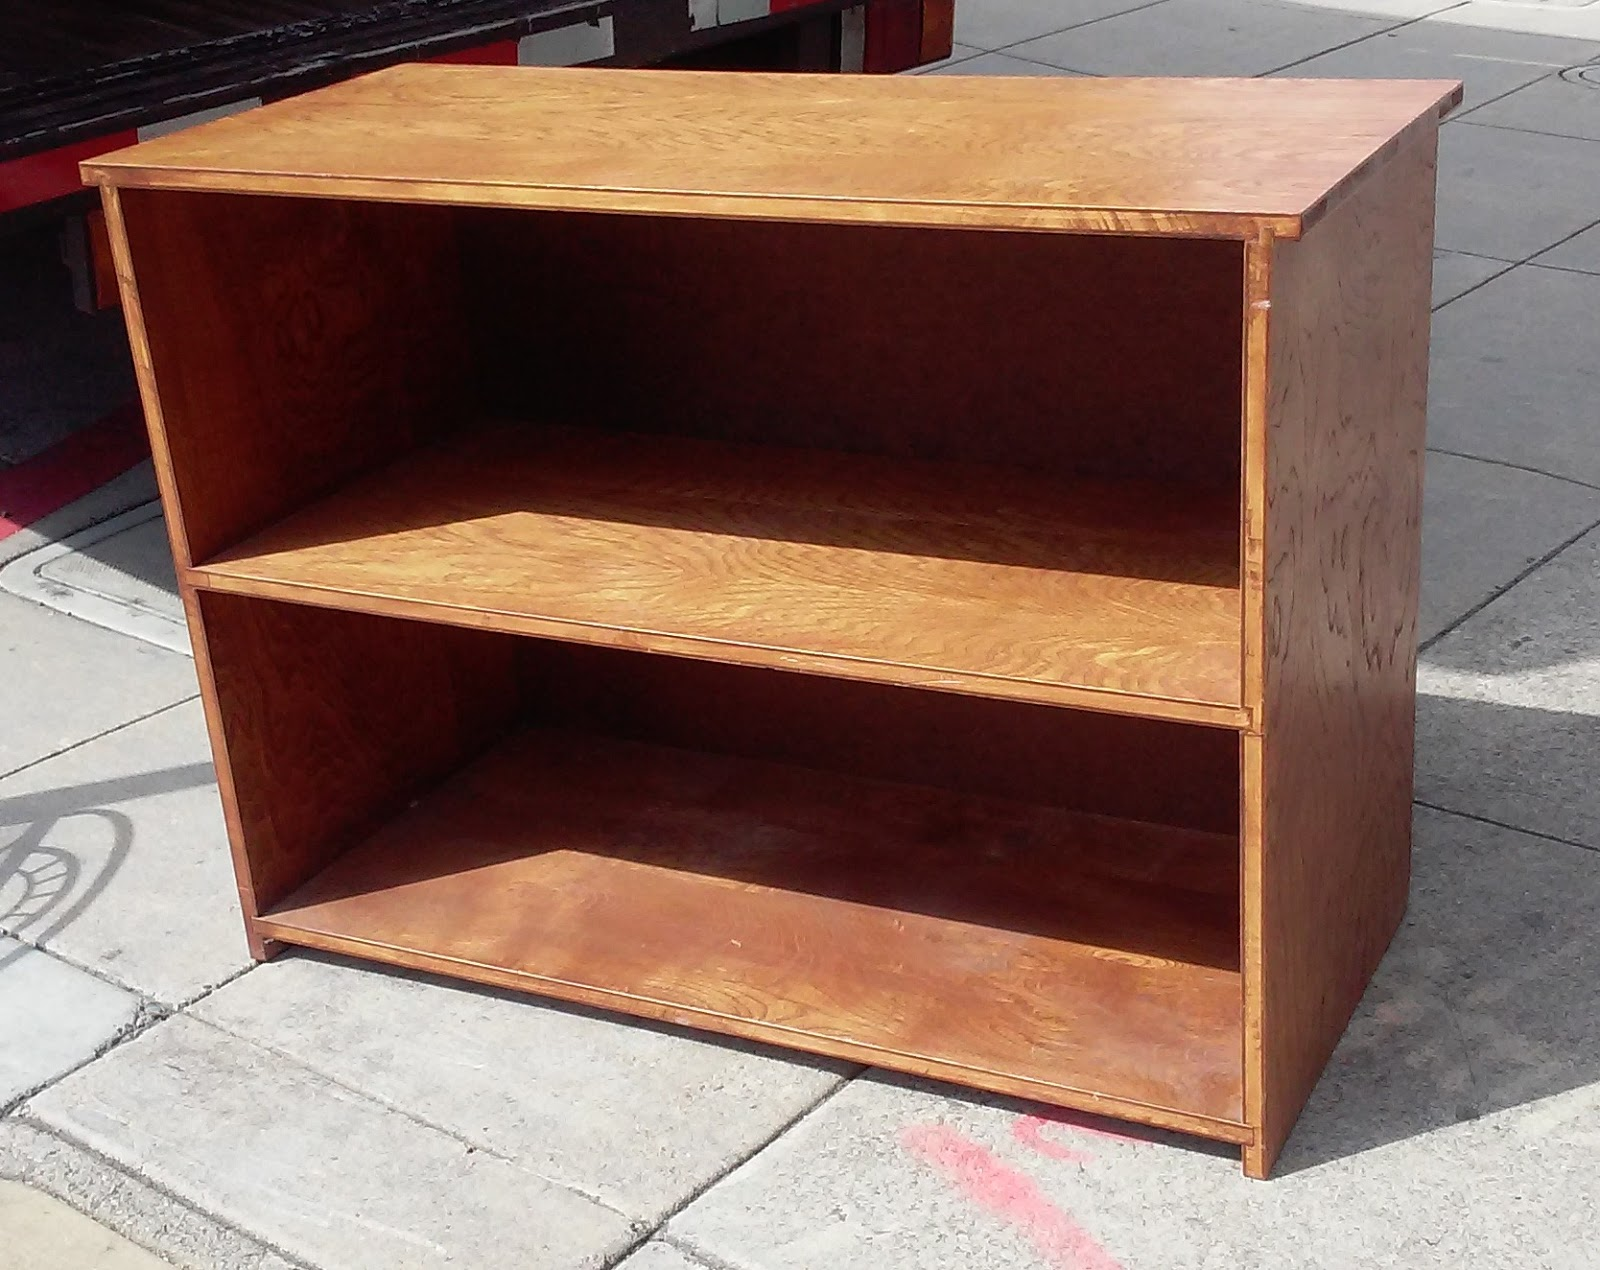 #A56926 UHURU FURNITURE & COLLECTIBLES: SOLD 18 Deep Oak Shelf $40 with 1600x1270 px of Recommended Deep Shelves Bookcase 12701600 save image @ avoidforclosure.info